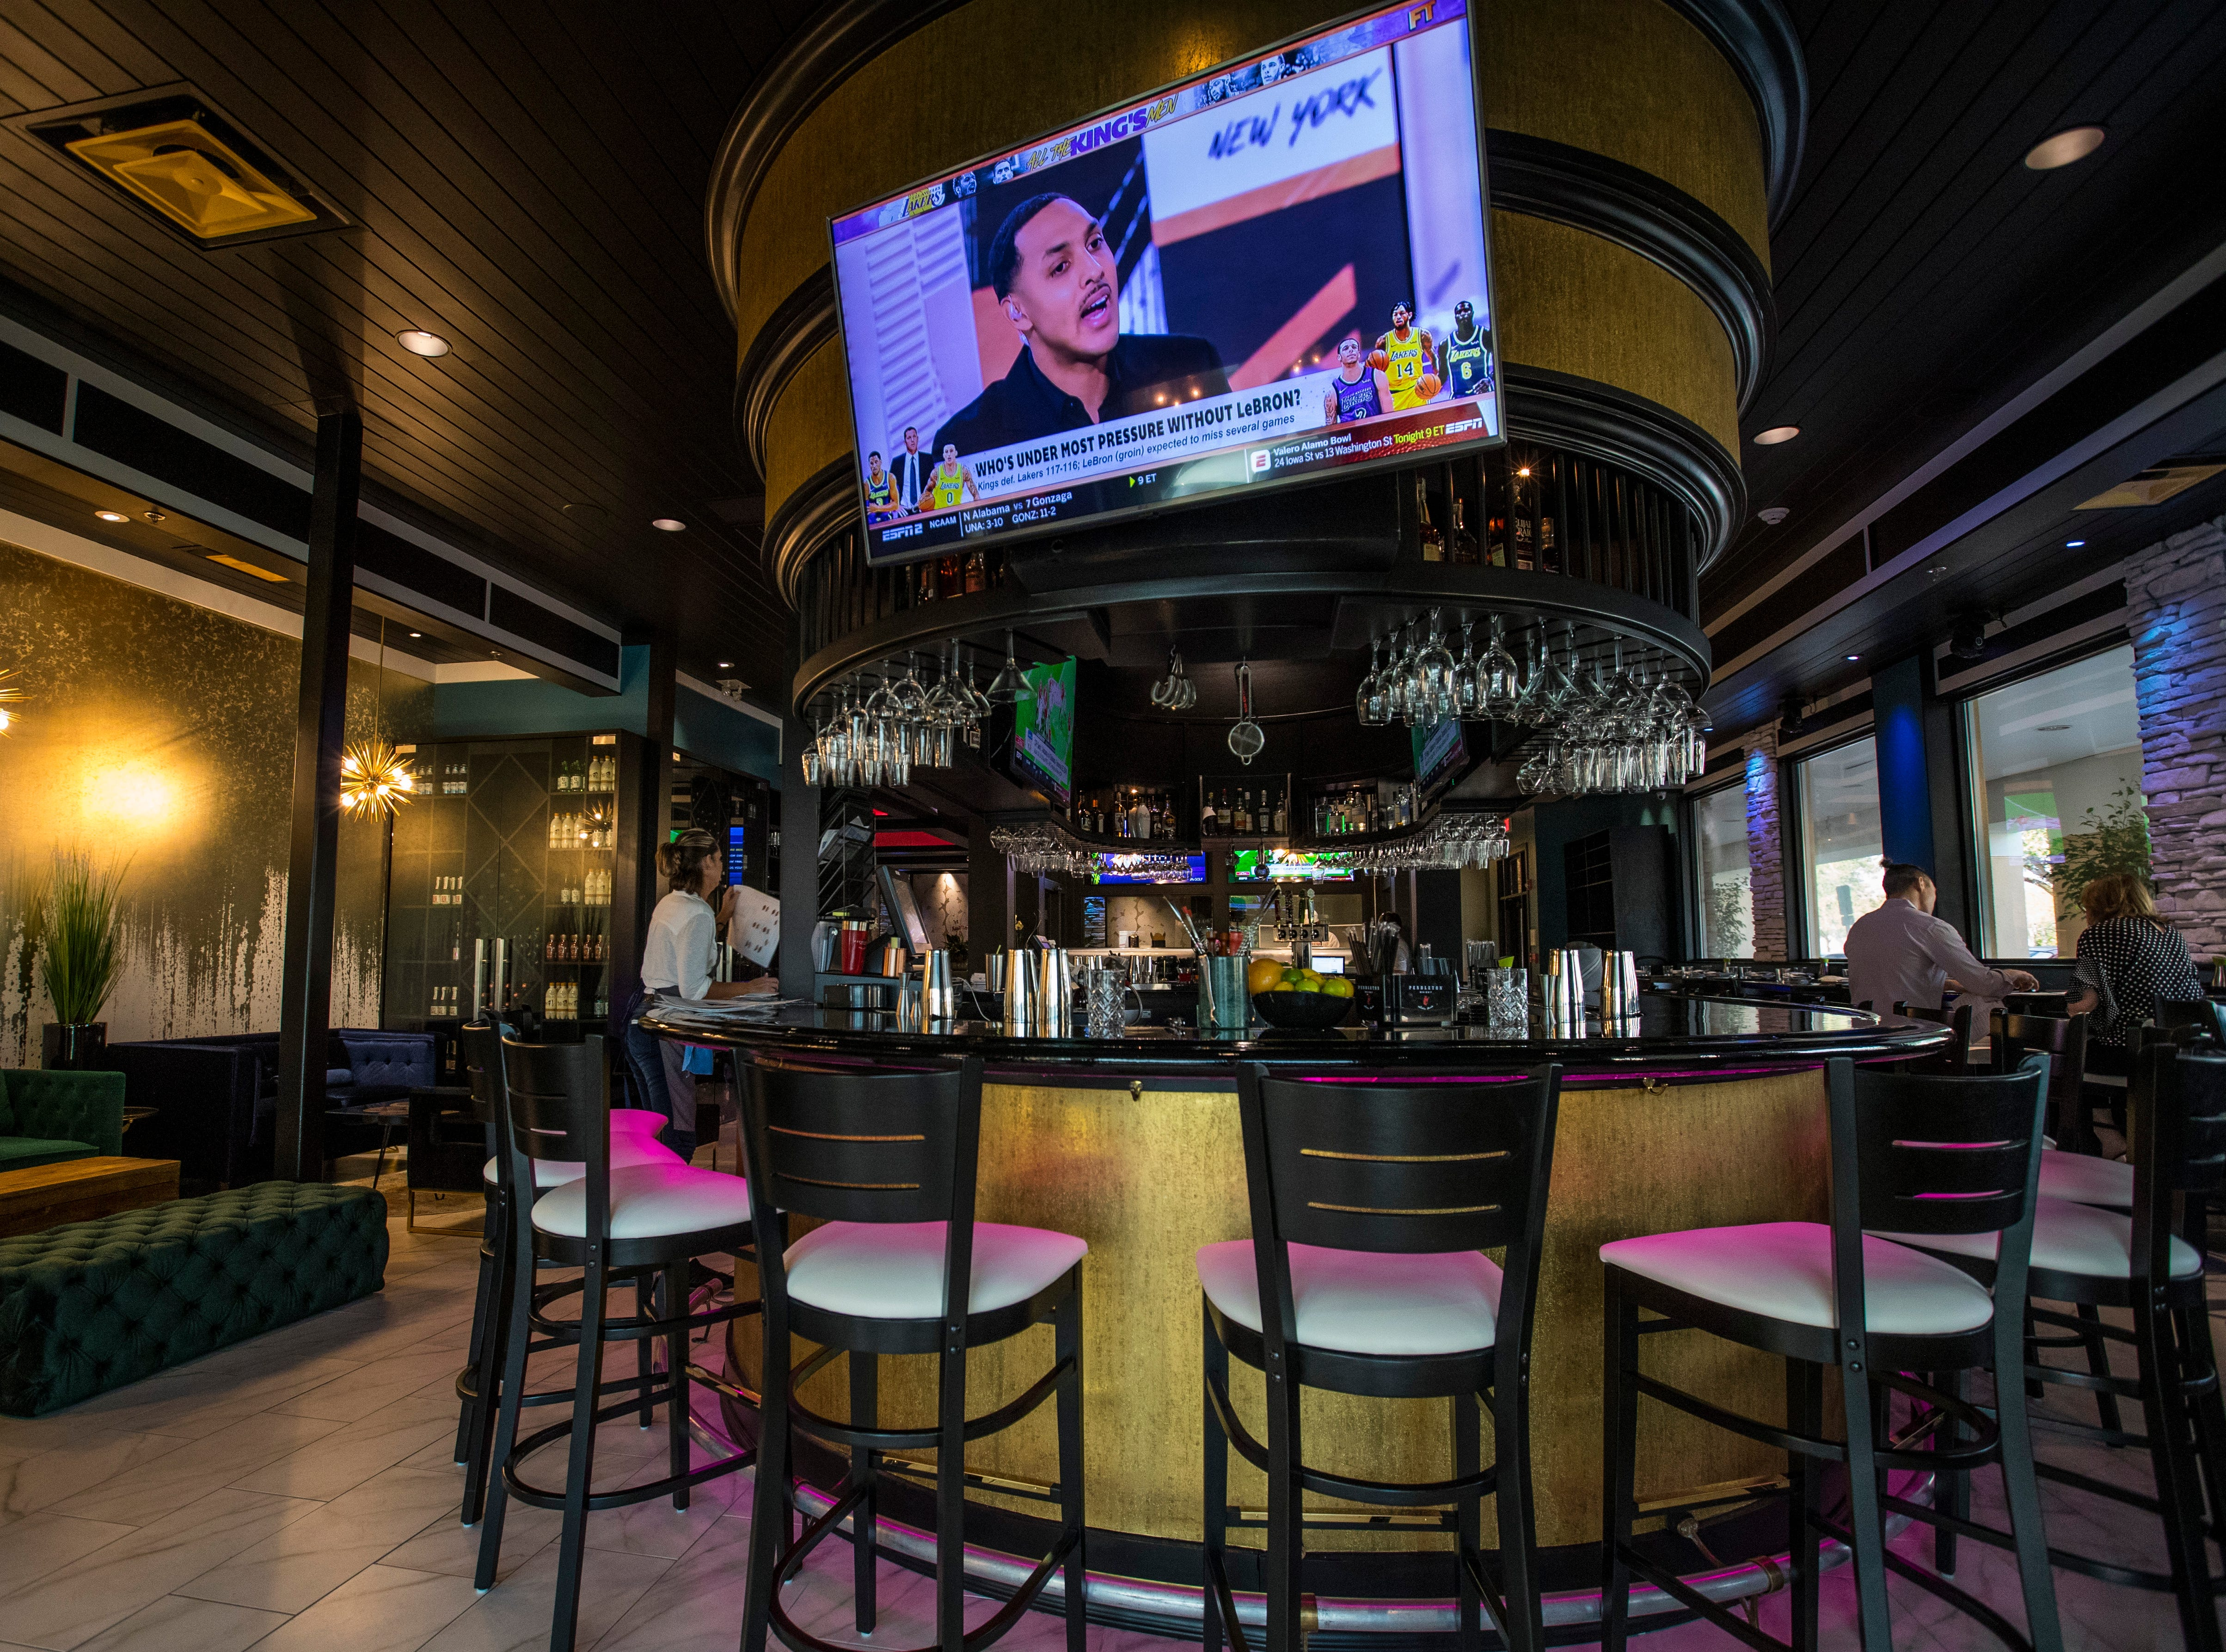 The bar. The lounge is on the left. Ember Korean Steakhouse, in south Fort Myers, opened in mid-December in the former Stonewood Grill space on College Parkway. The restaurant offers Korean barbecue along with a modern, Asian-American gastropub menu. It also features a sushi bar and craft cocktails. Ember completed a stunning redesign of the old Stonewood space.